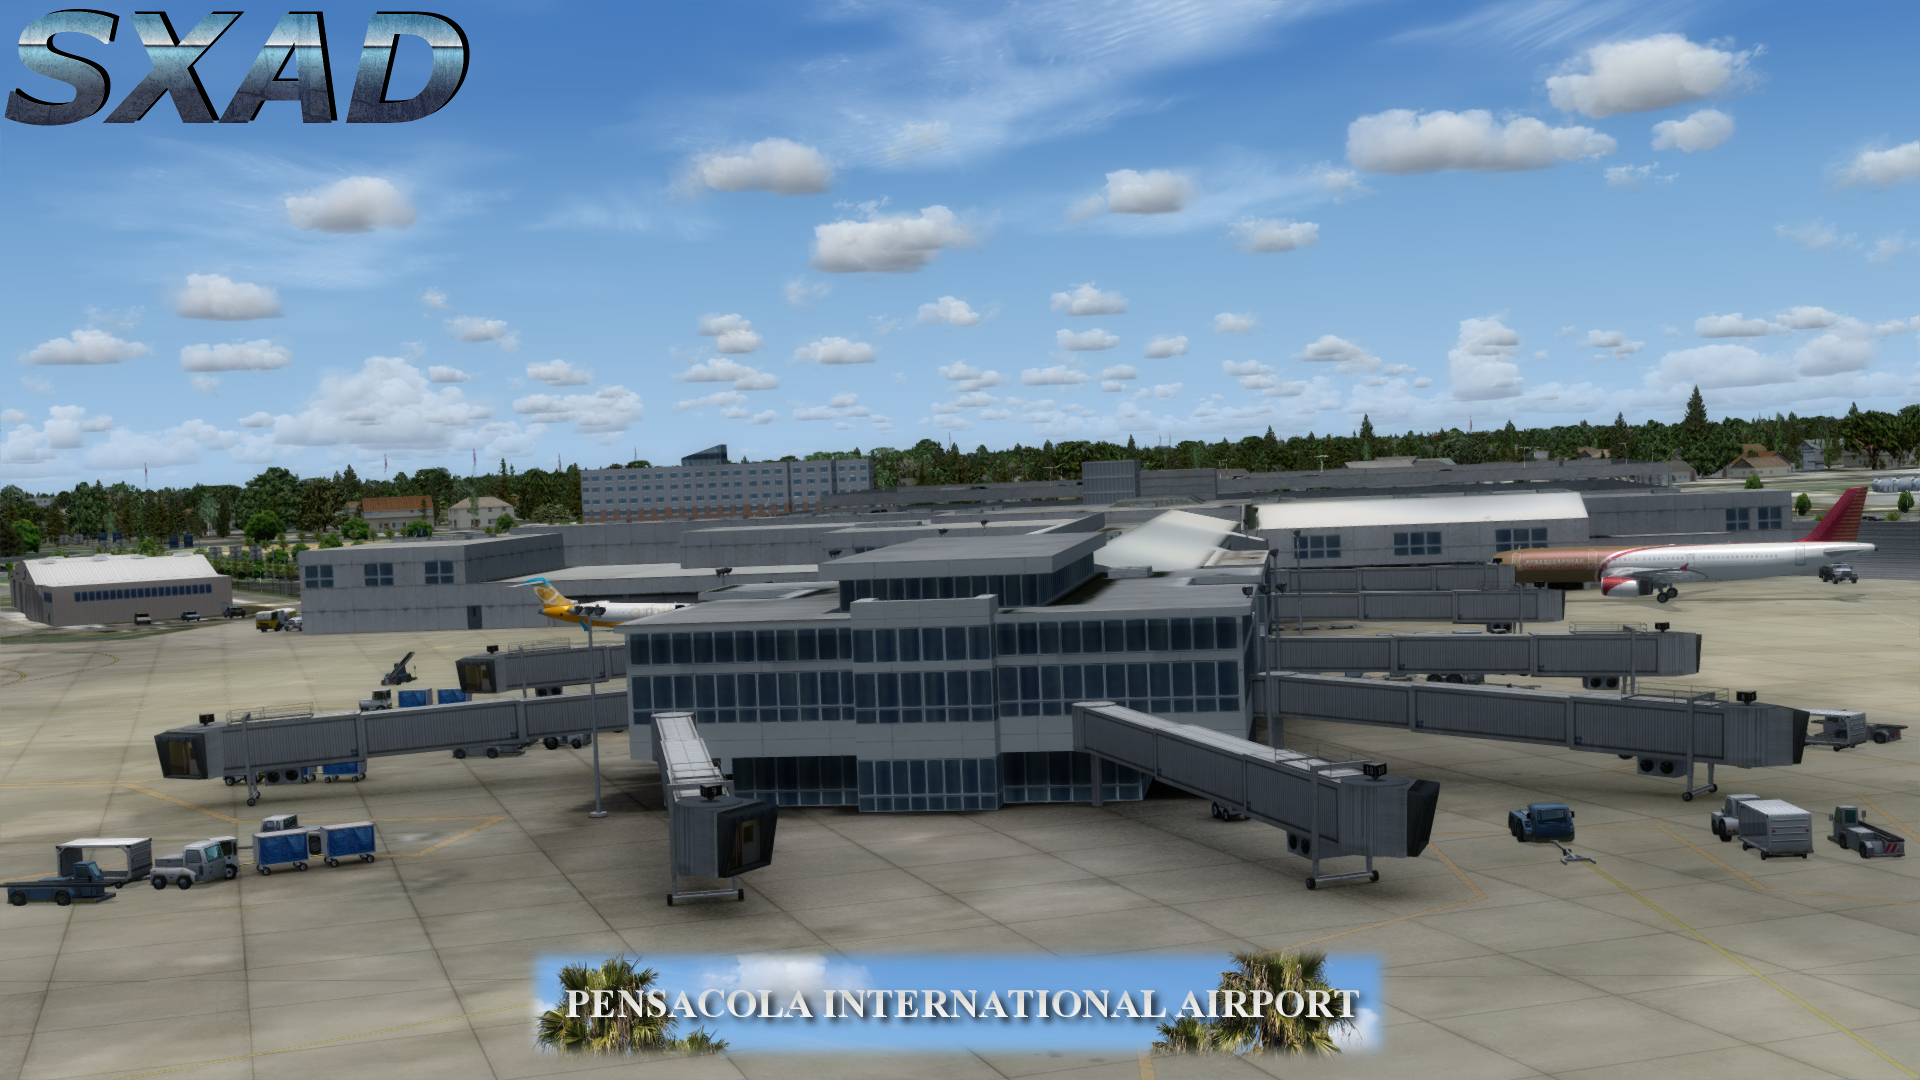 SXAIRPORTDESIGN - PENSACOLA INTERNATIONAL AIRPORT FSX P3D